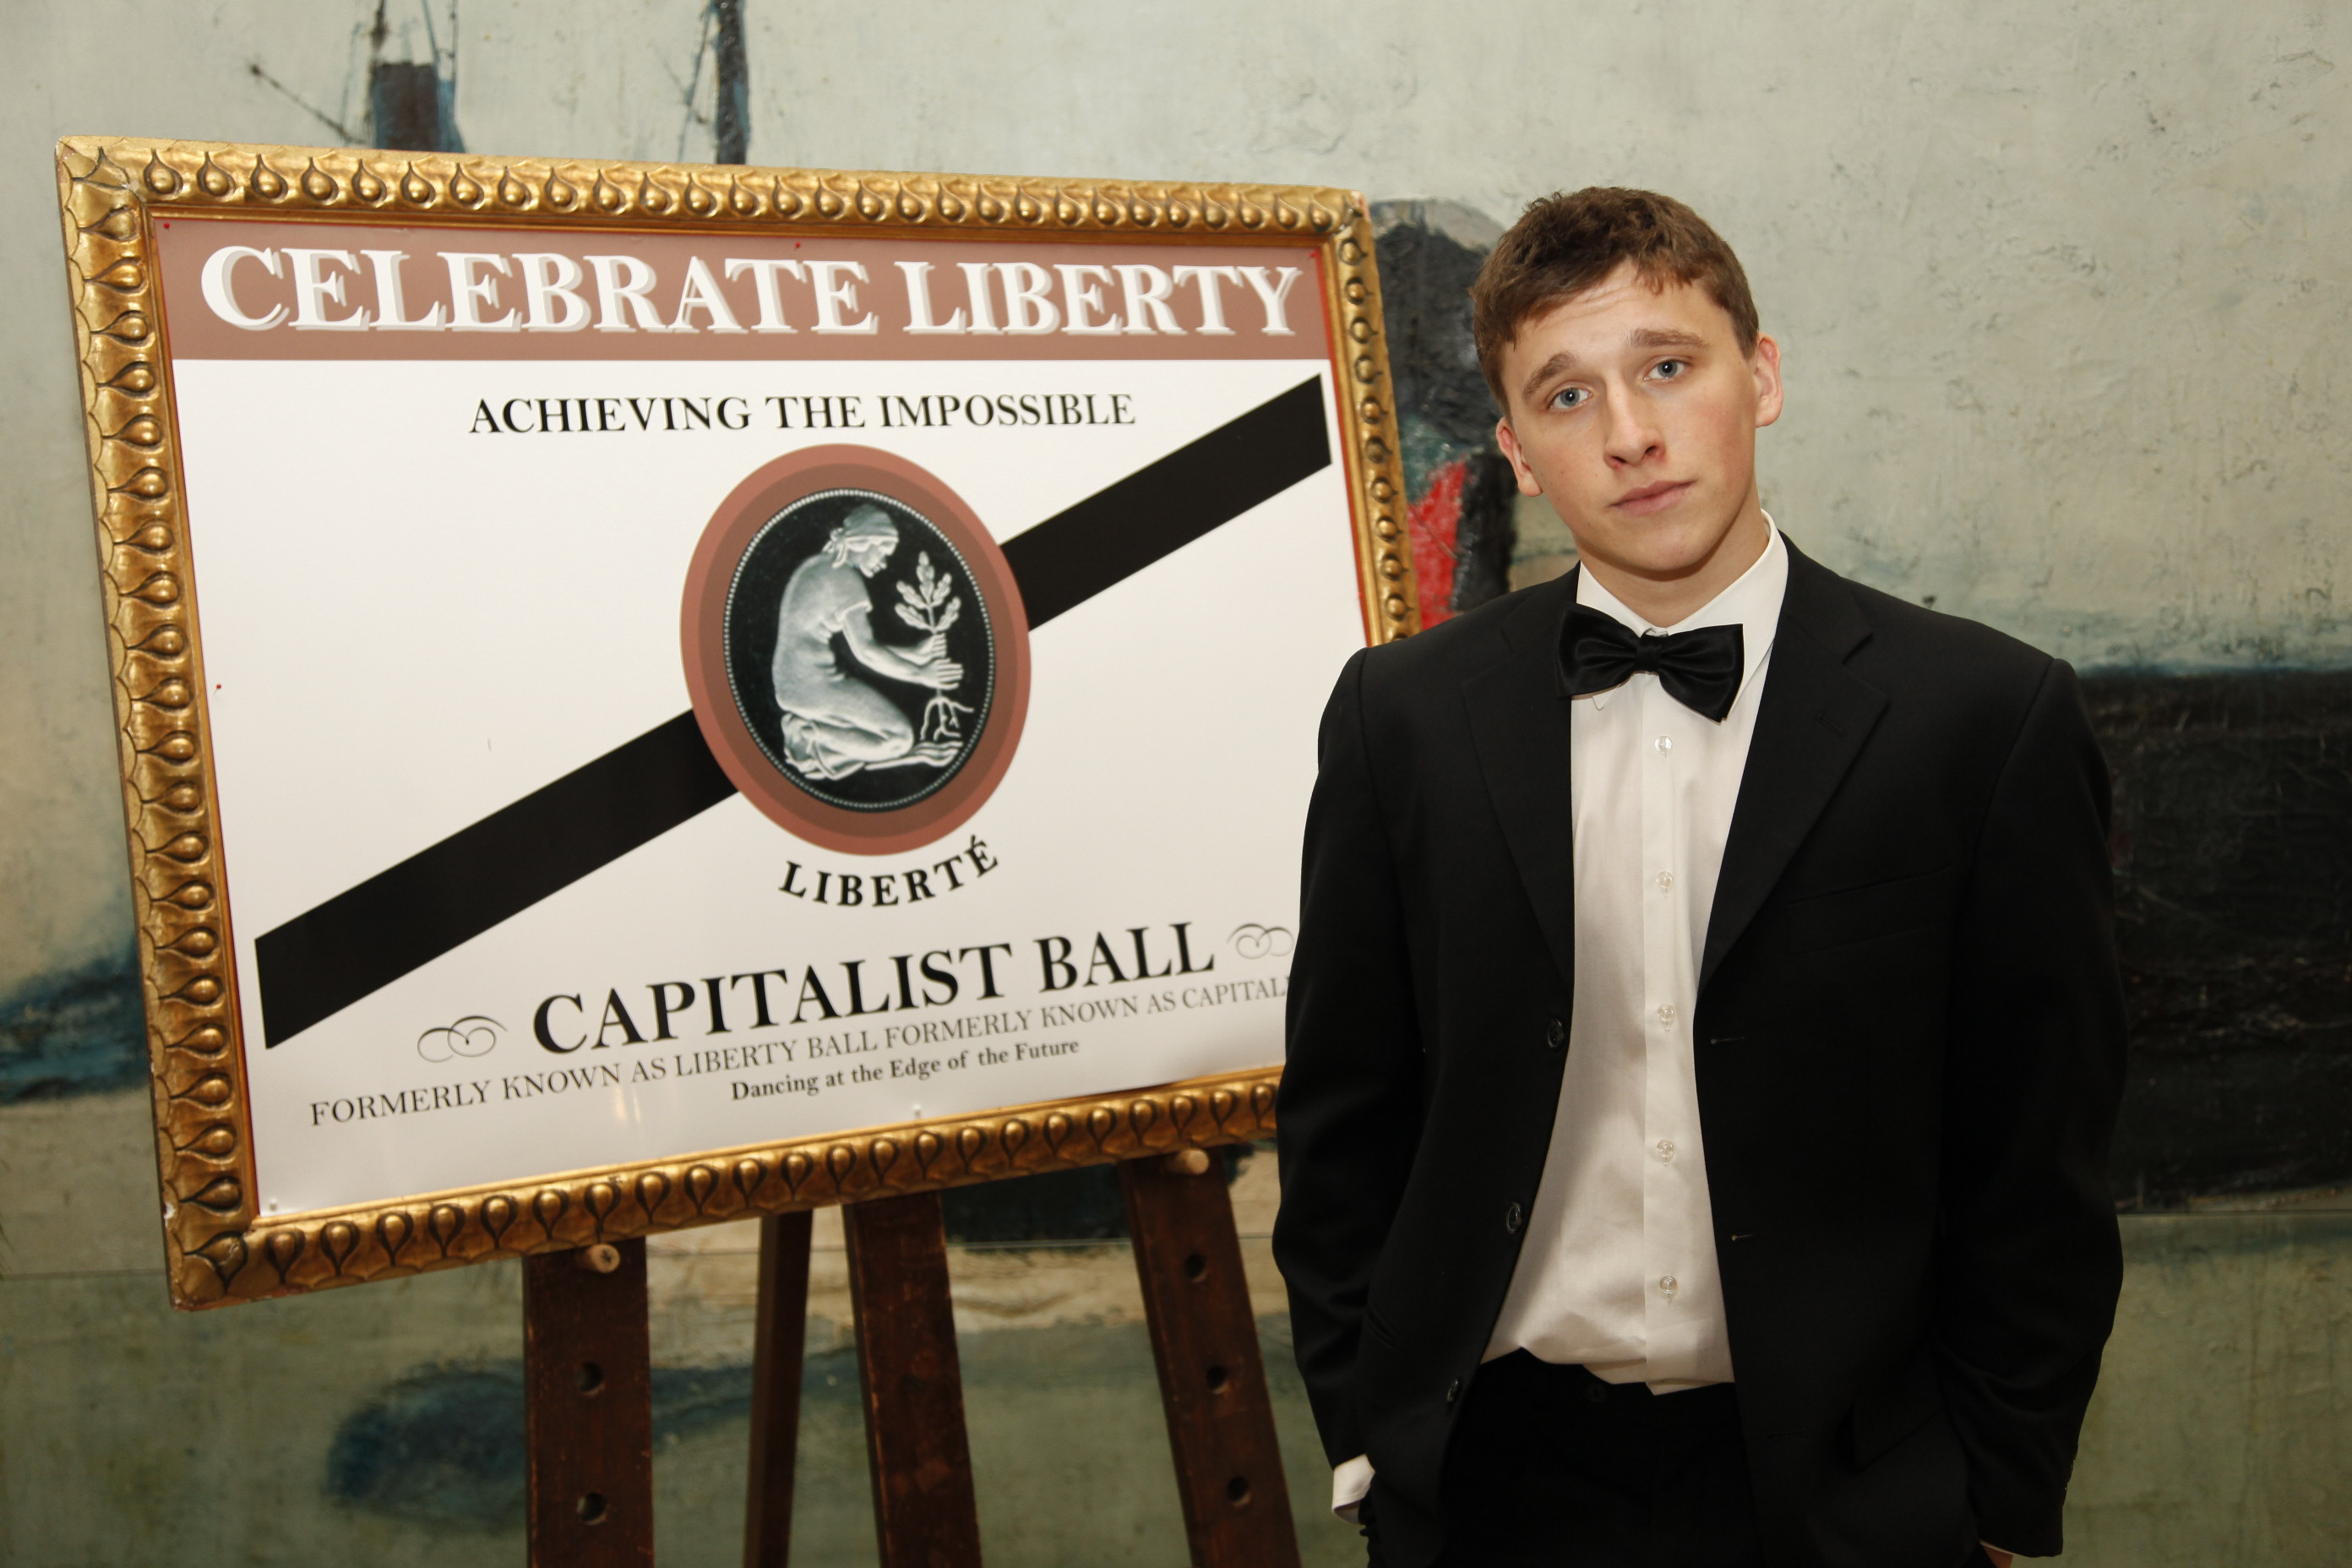 Capitalist Ball formerly known as Liberty Ball formerly known as Capitalist Ball